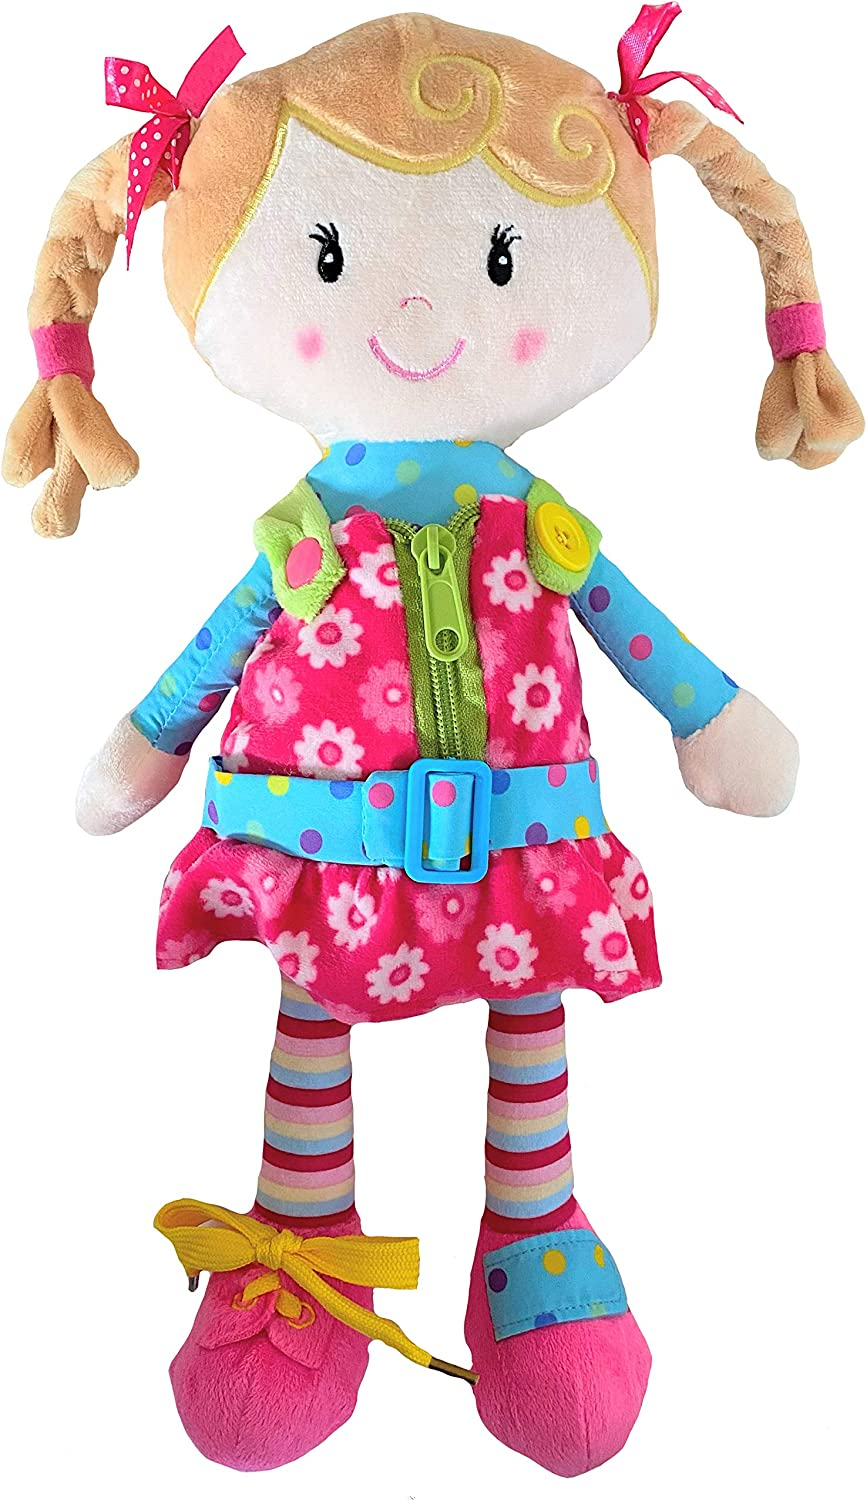 Snuggle Stuffs Sugar Snap 15 Activity Educational Doll for Toddlers Making Believe